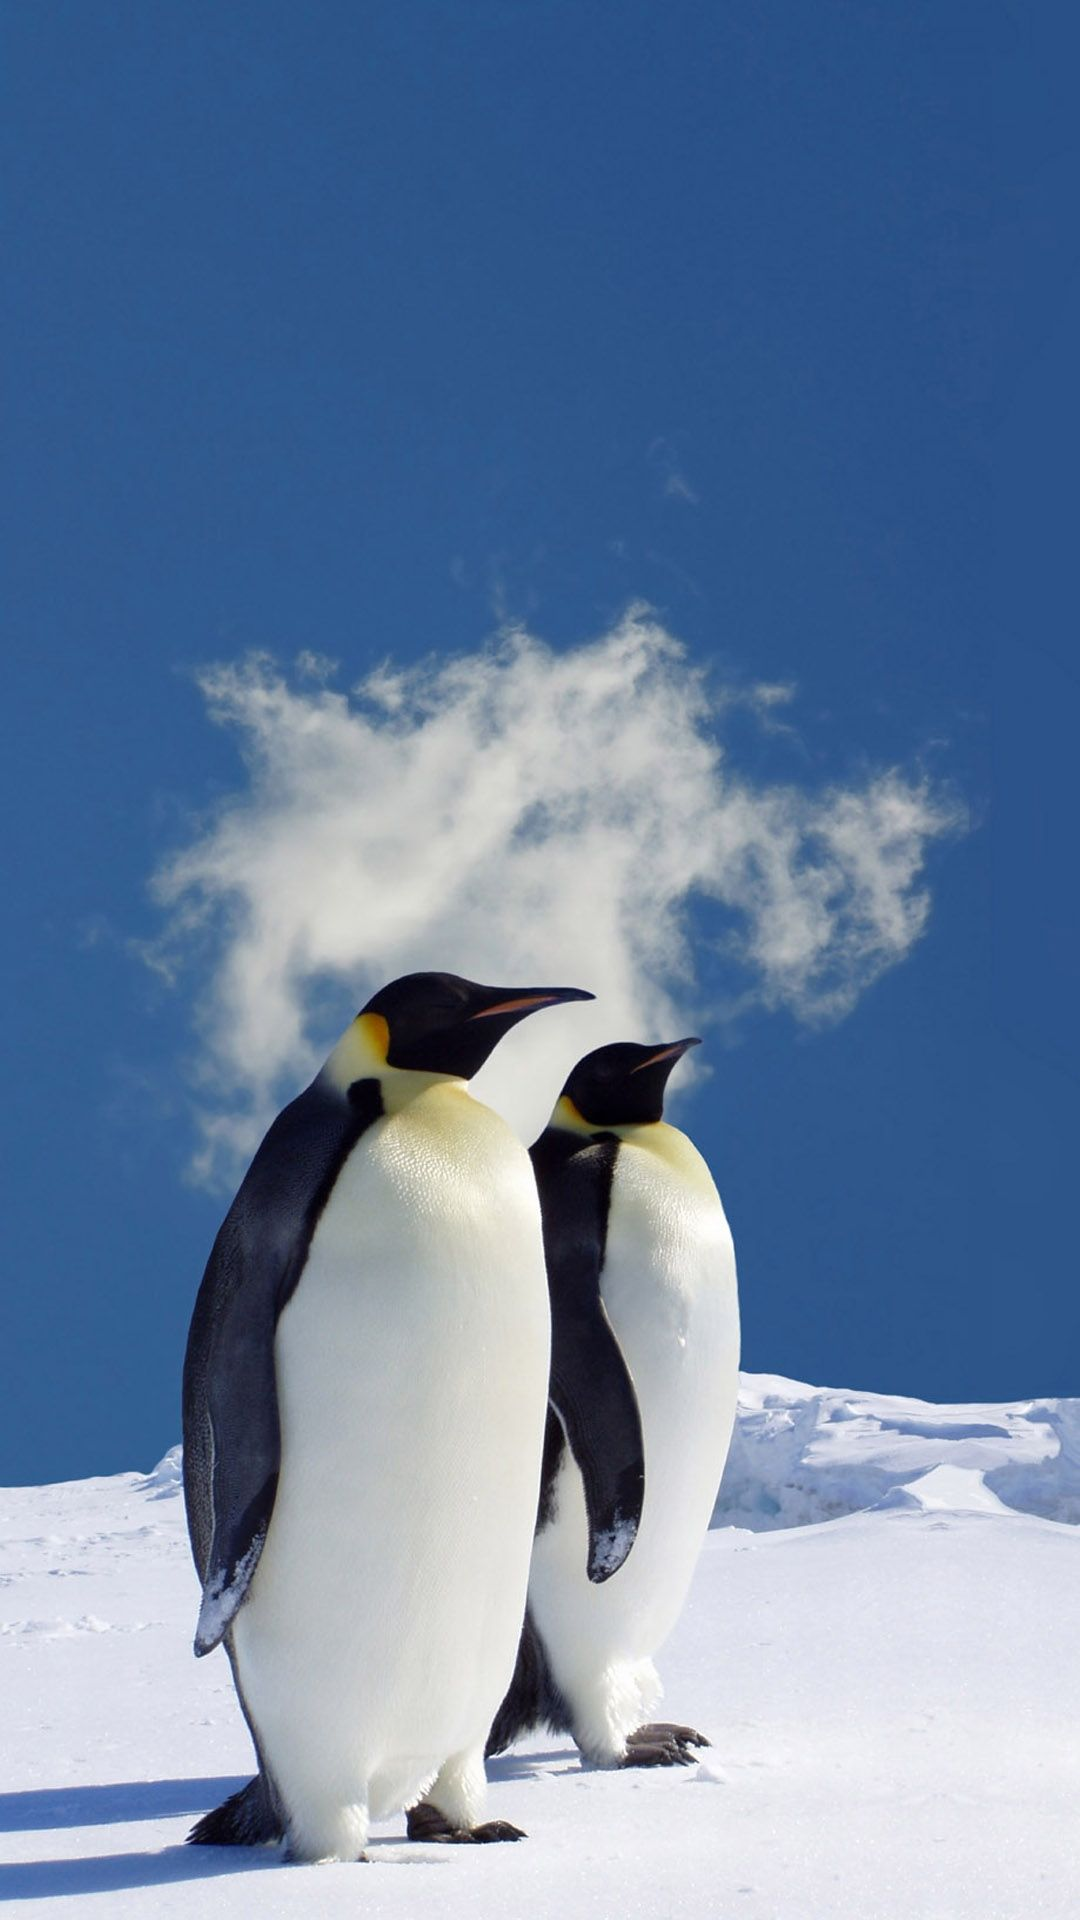 iphone wallpaper | winter wallpaper! | pinterest | penguins, animals